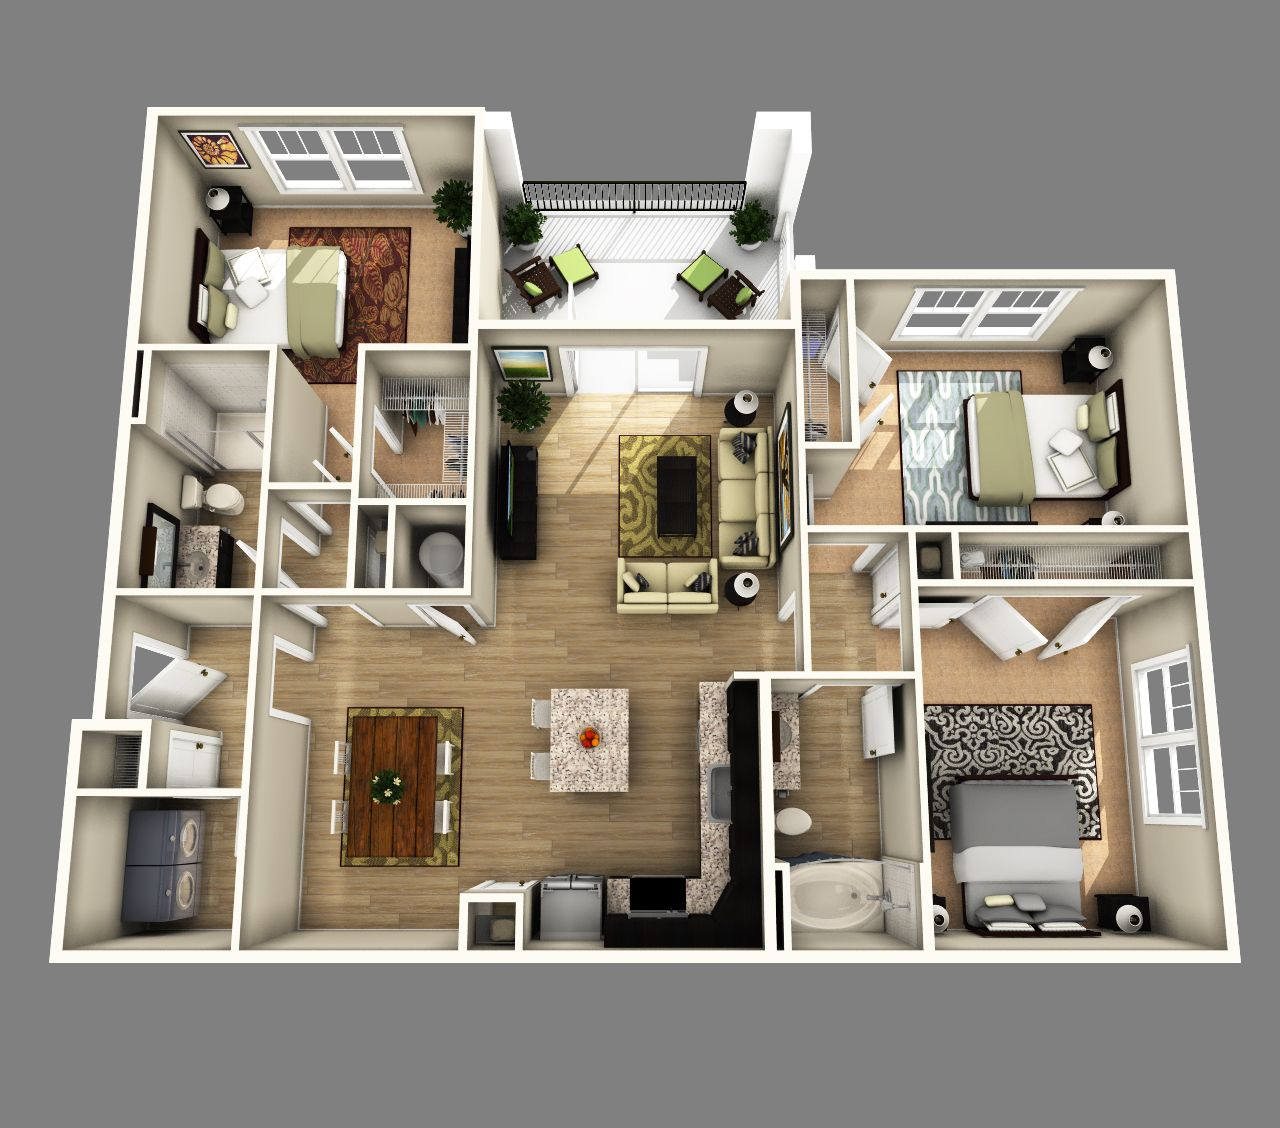 3 bedrooms apartments for Three bedroom apartment layout